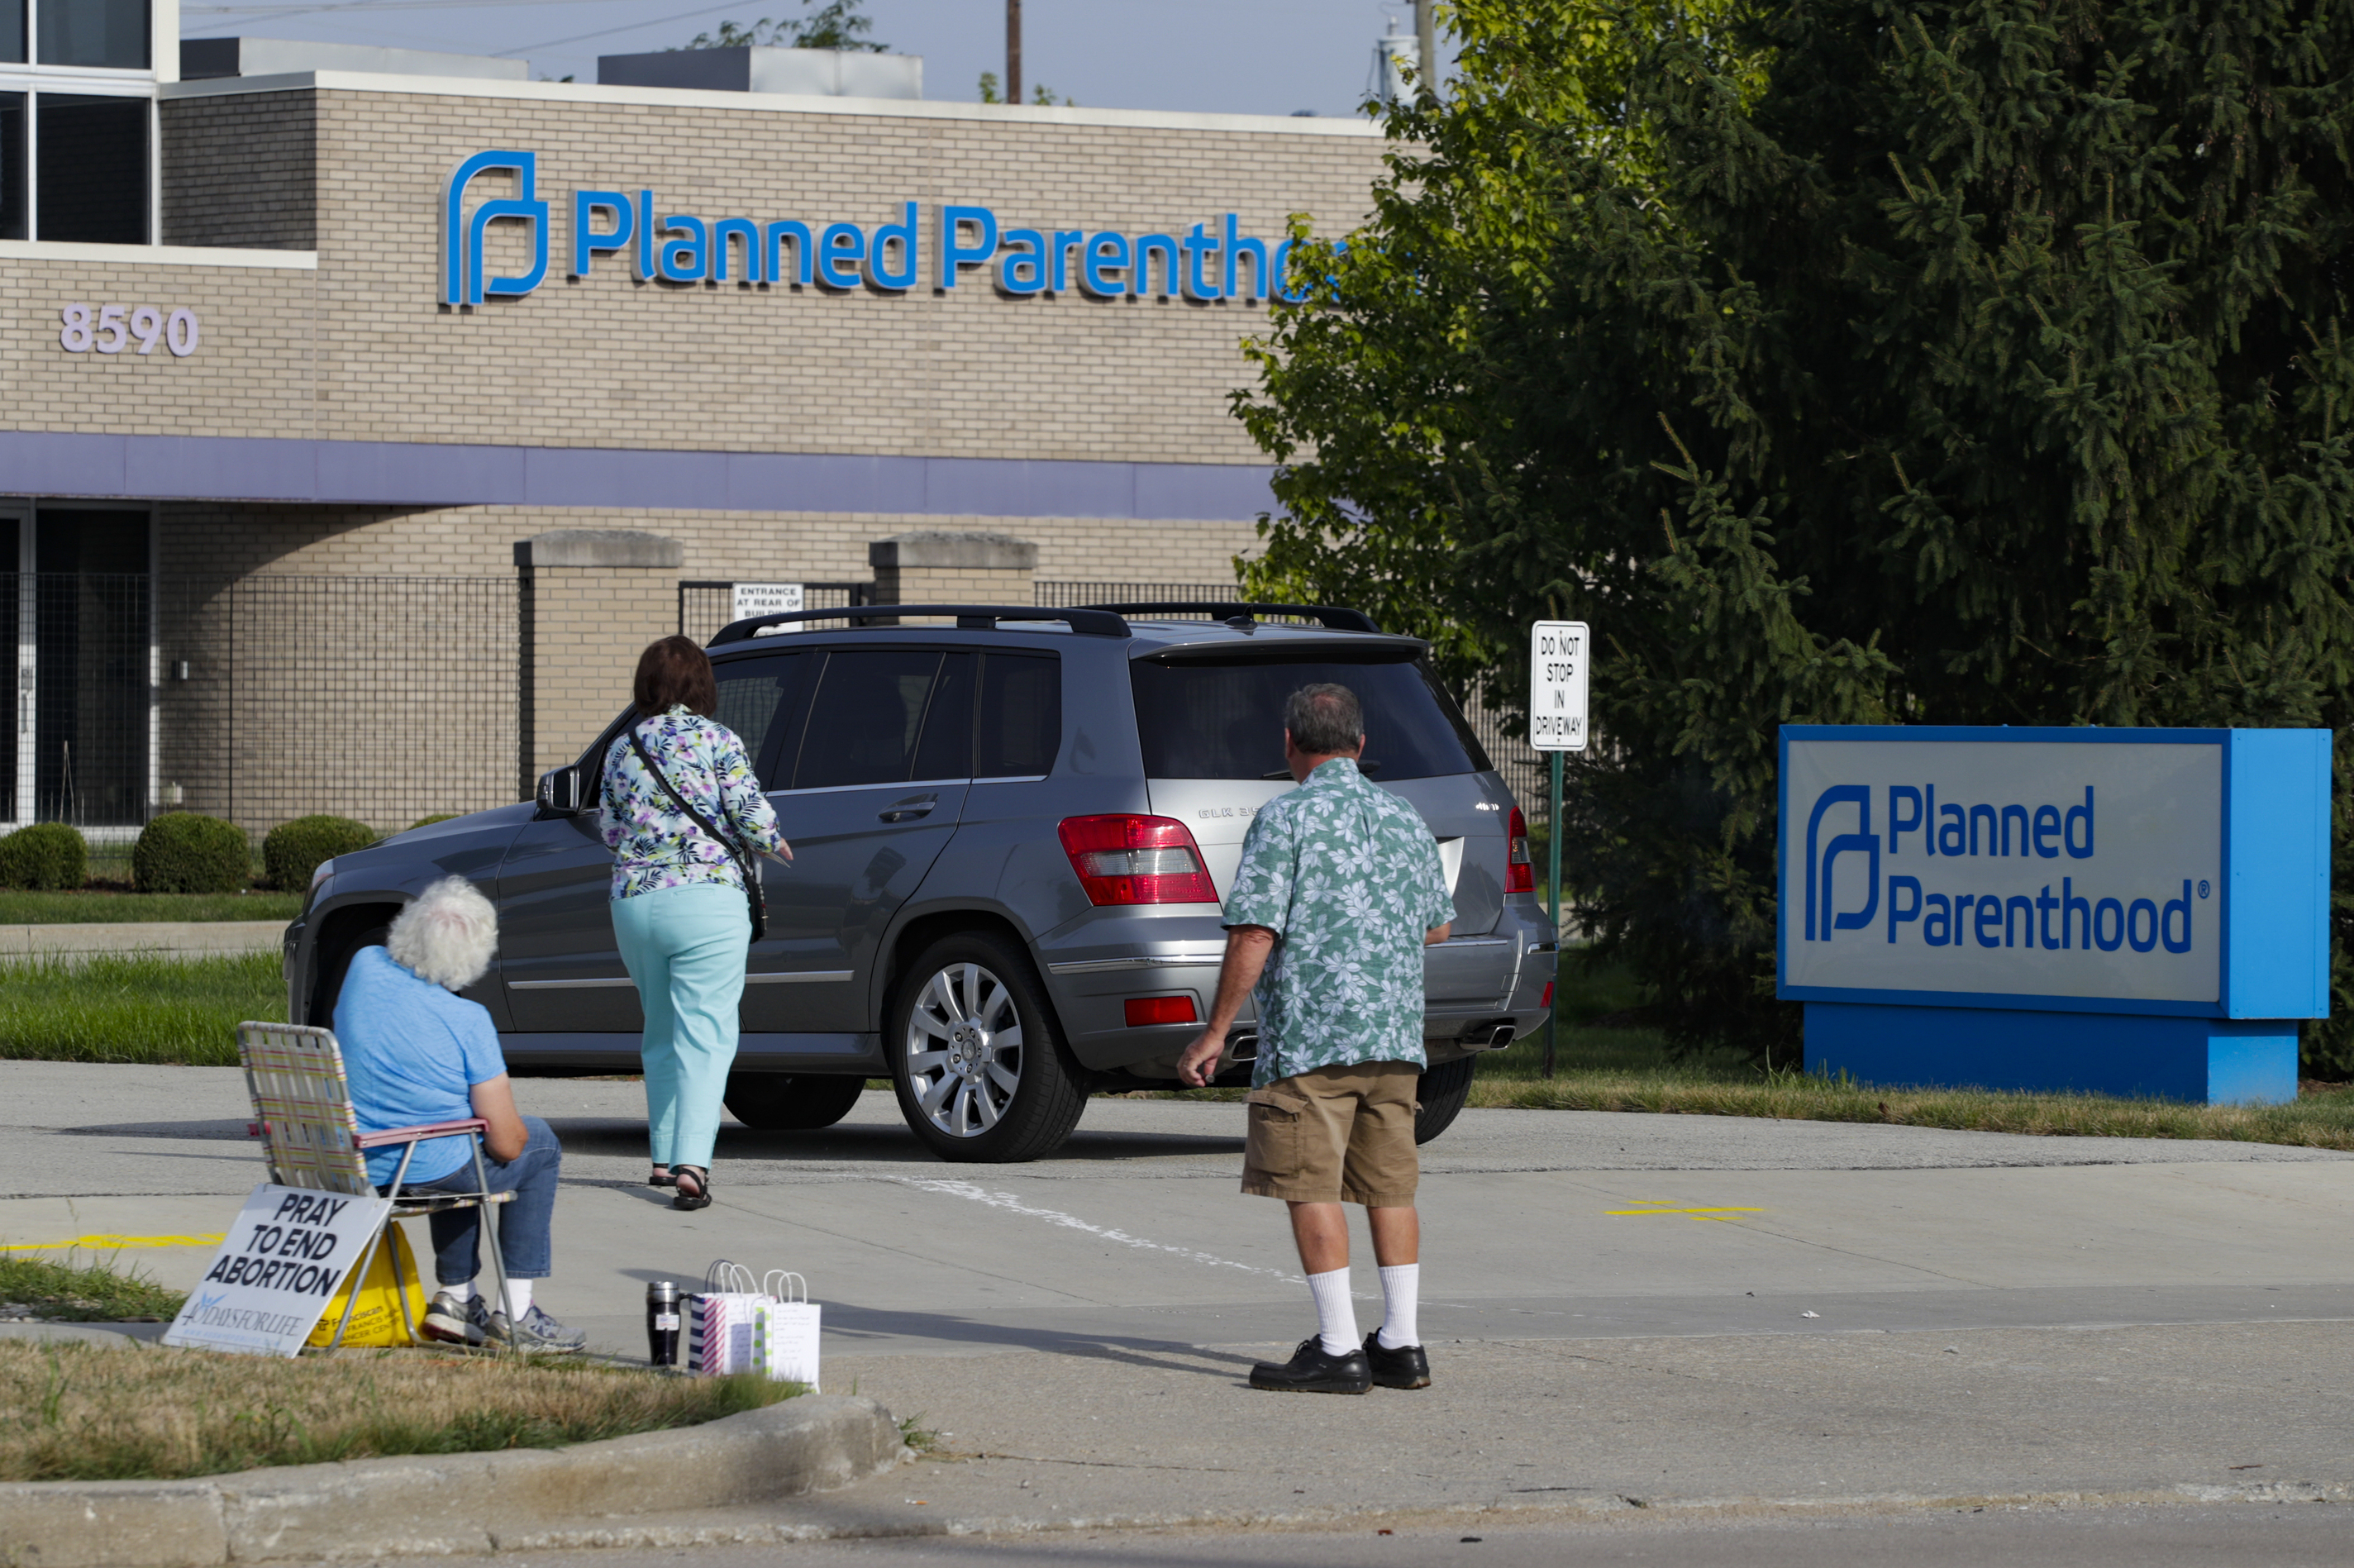 Utah's Planned Parenthood clinic stops some services over abortion 'gag rule'